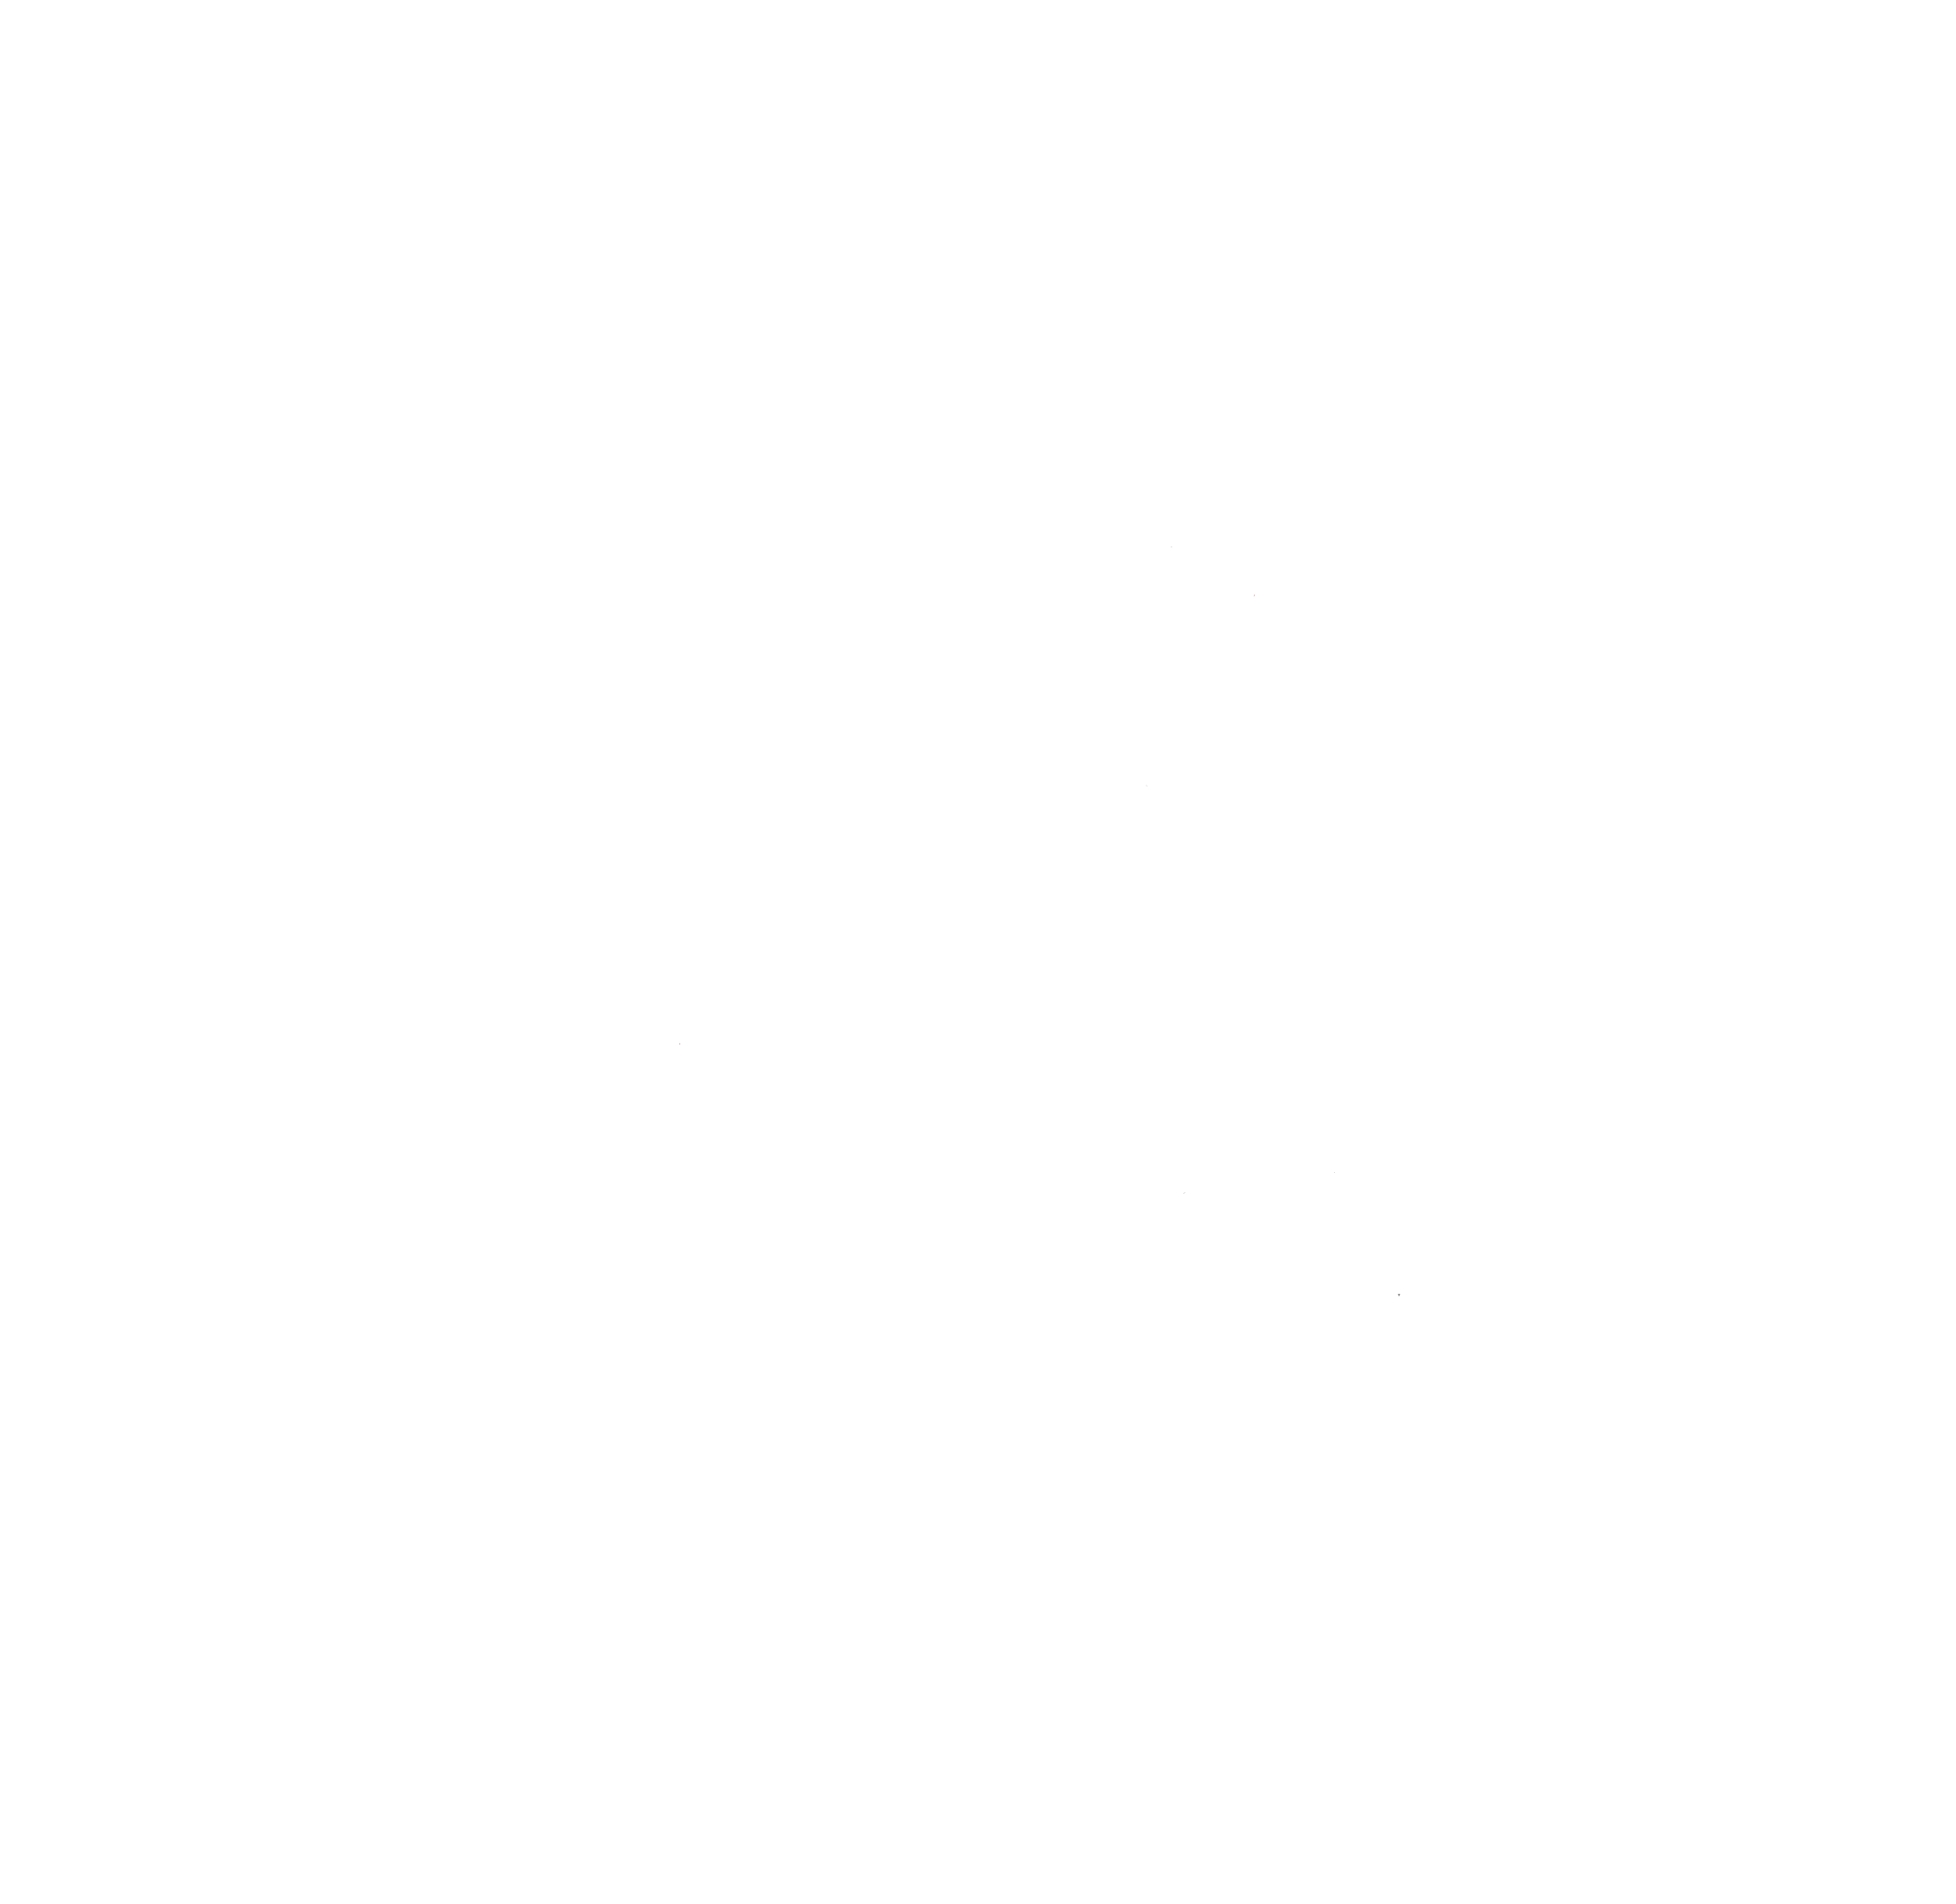 Mickey Mantle World Series